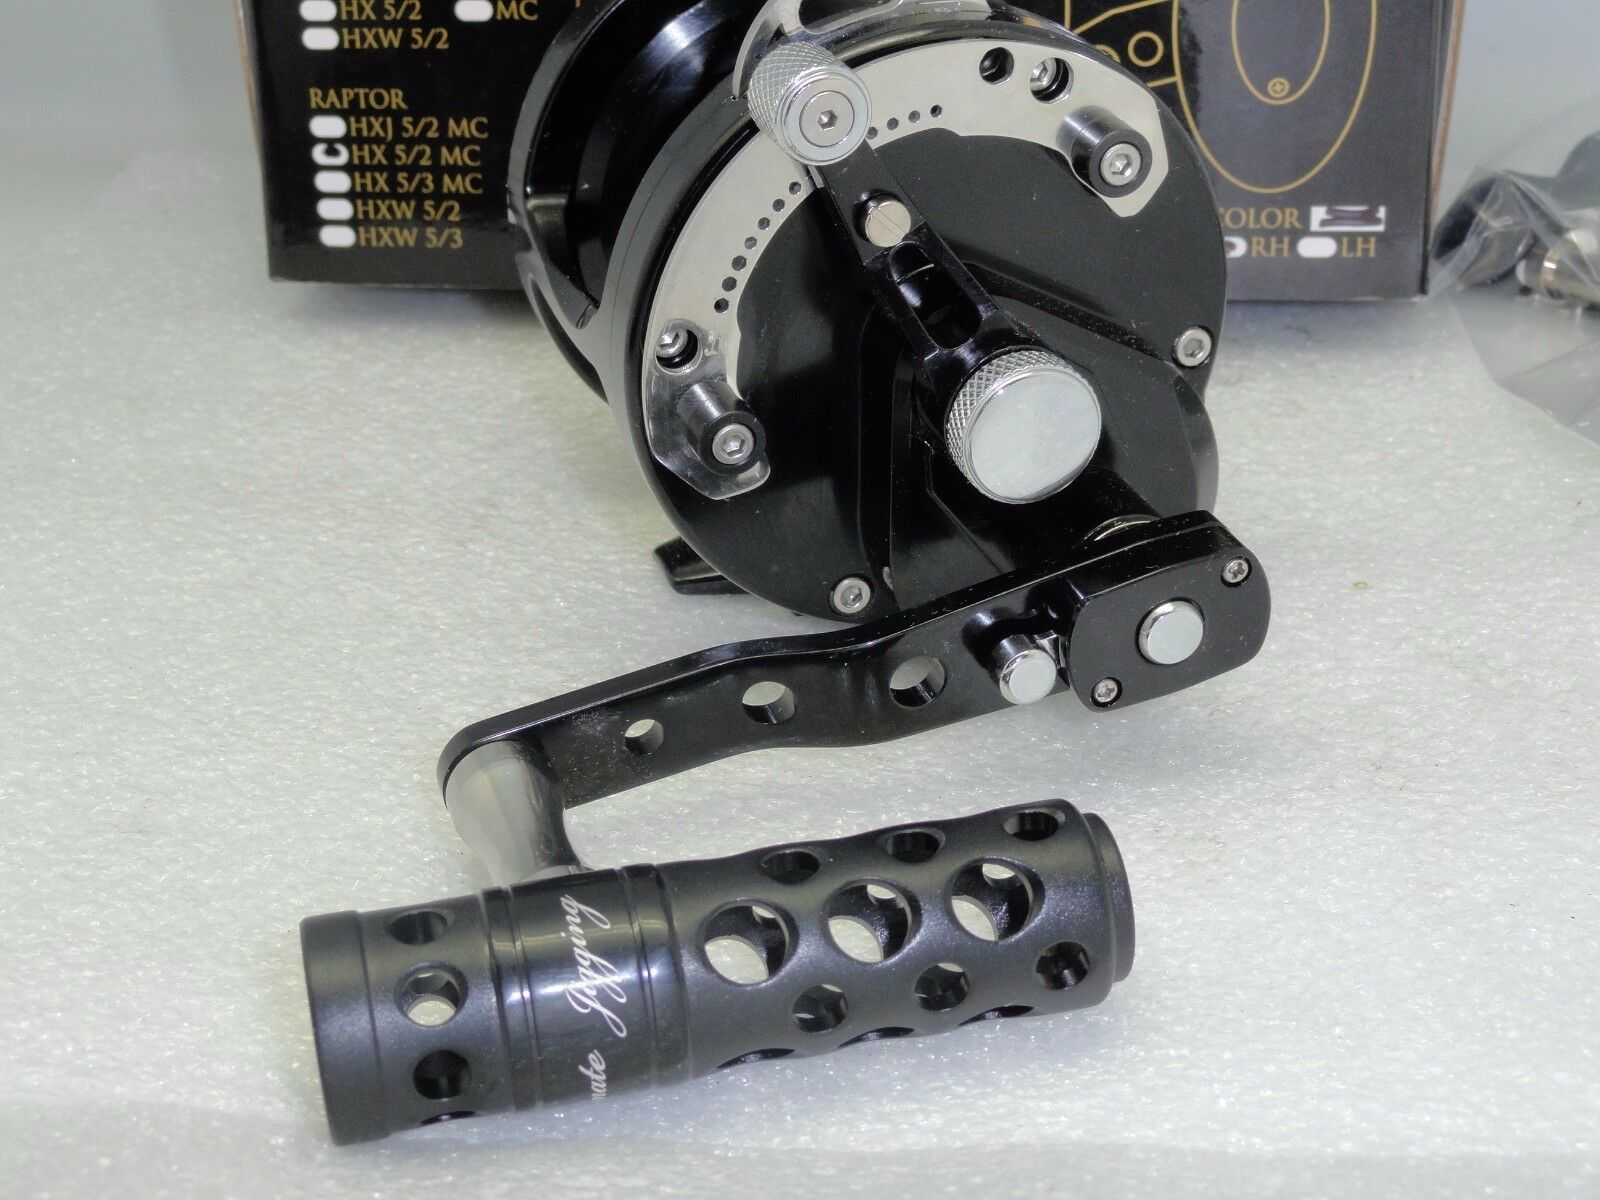 UJ T-BAR T052-A T-BAR UJ handle knob direct fit Avet SX MX LX HXW MC Raptor reel Gunmetal 6ed5ea